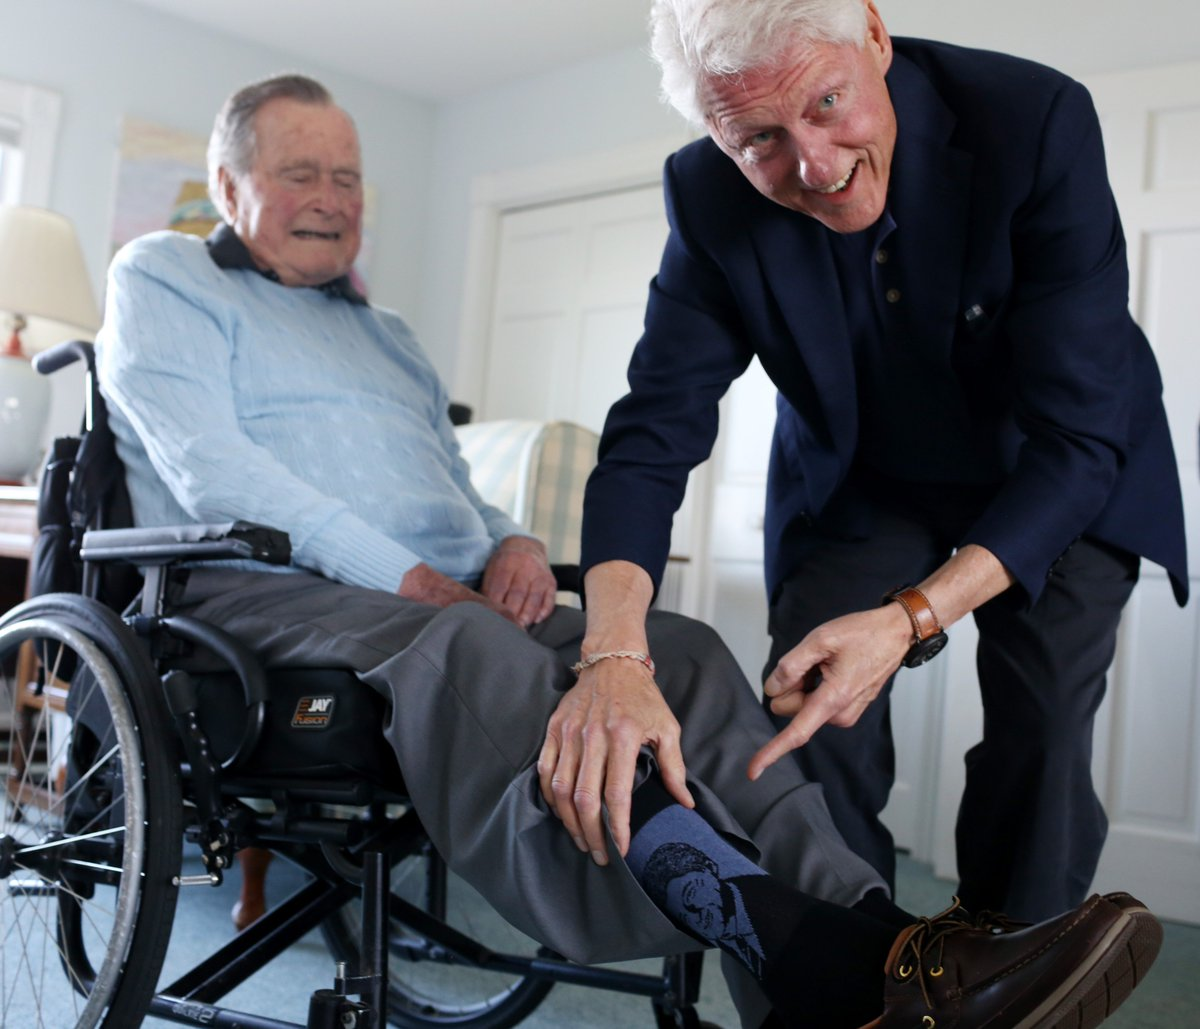 Special visit today with a great friend -- and now, a best-selling author. Luckily I had a freshly laundered pair of @BillClinton socks to mark the occasion.